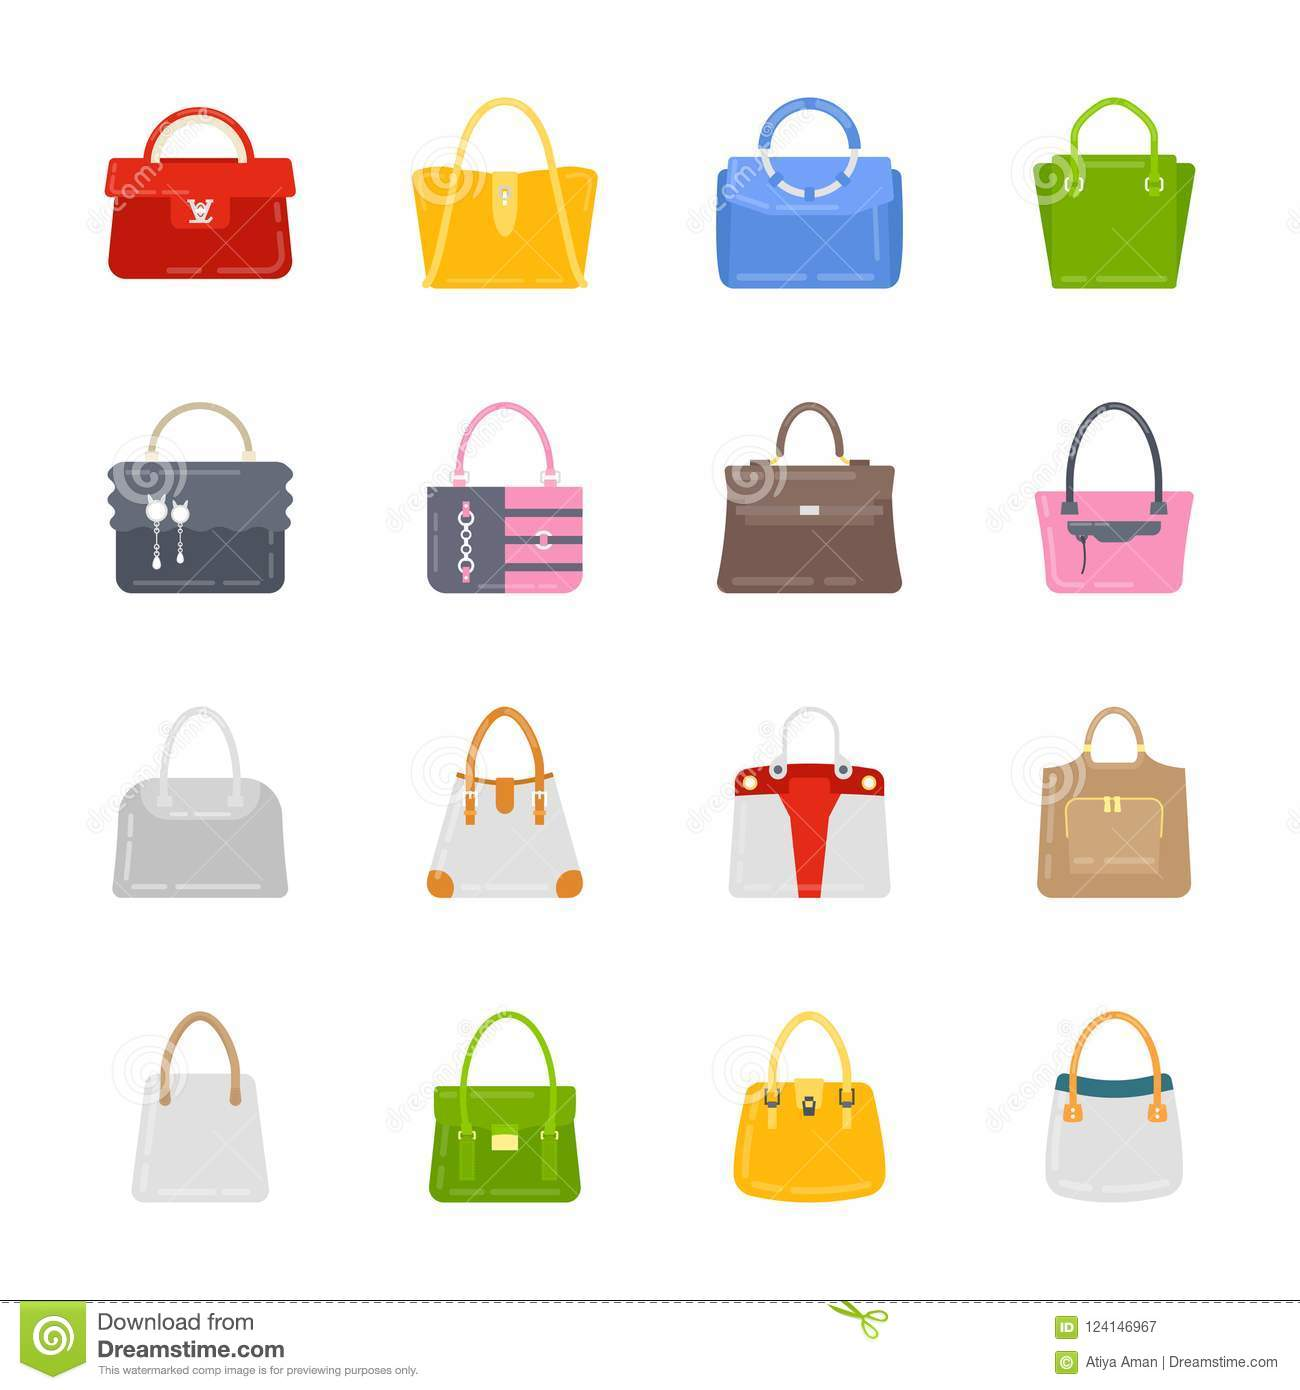 68c7816237b Ladies purses icon set stock illustration. Illustration of purse ...